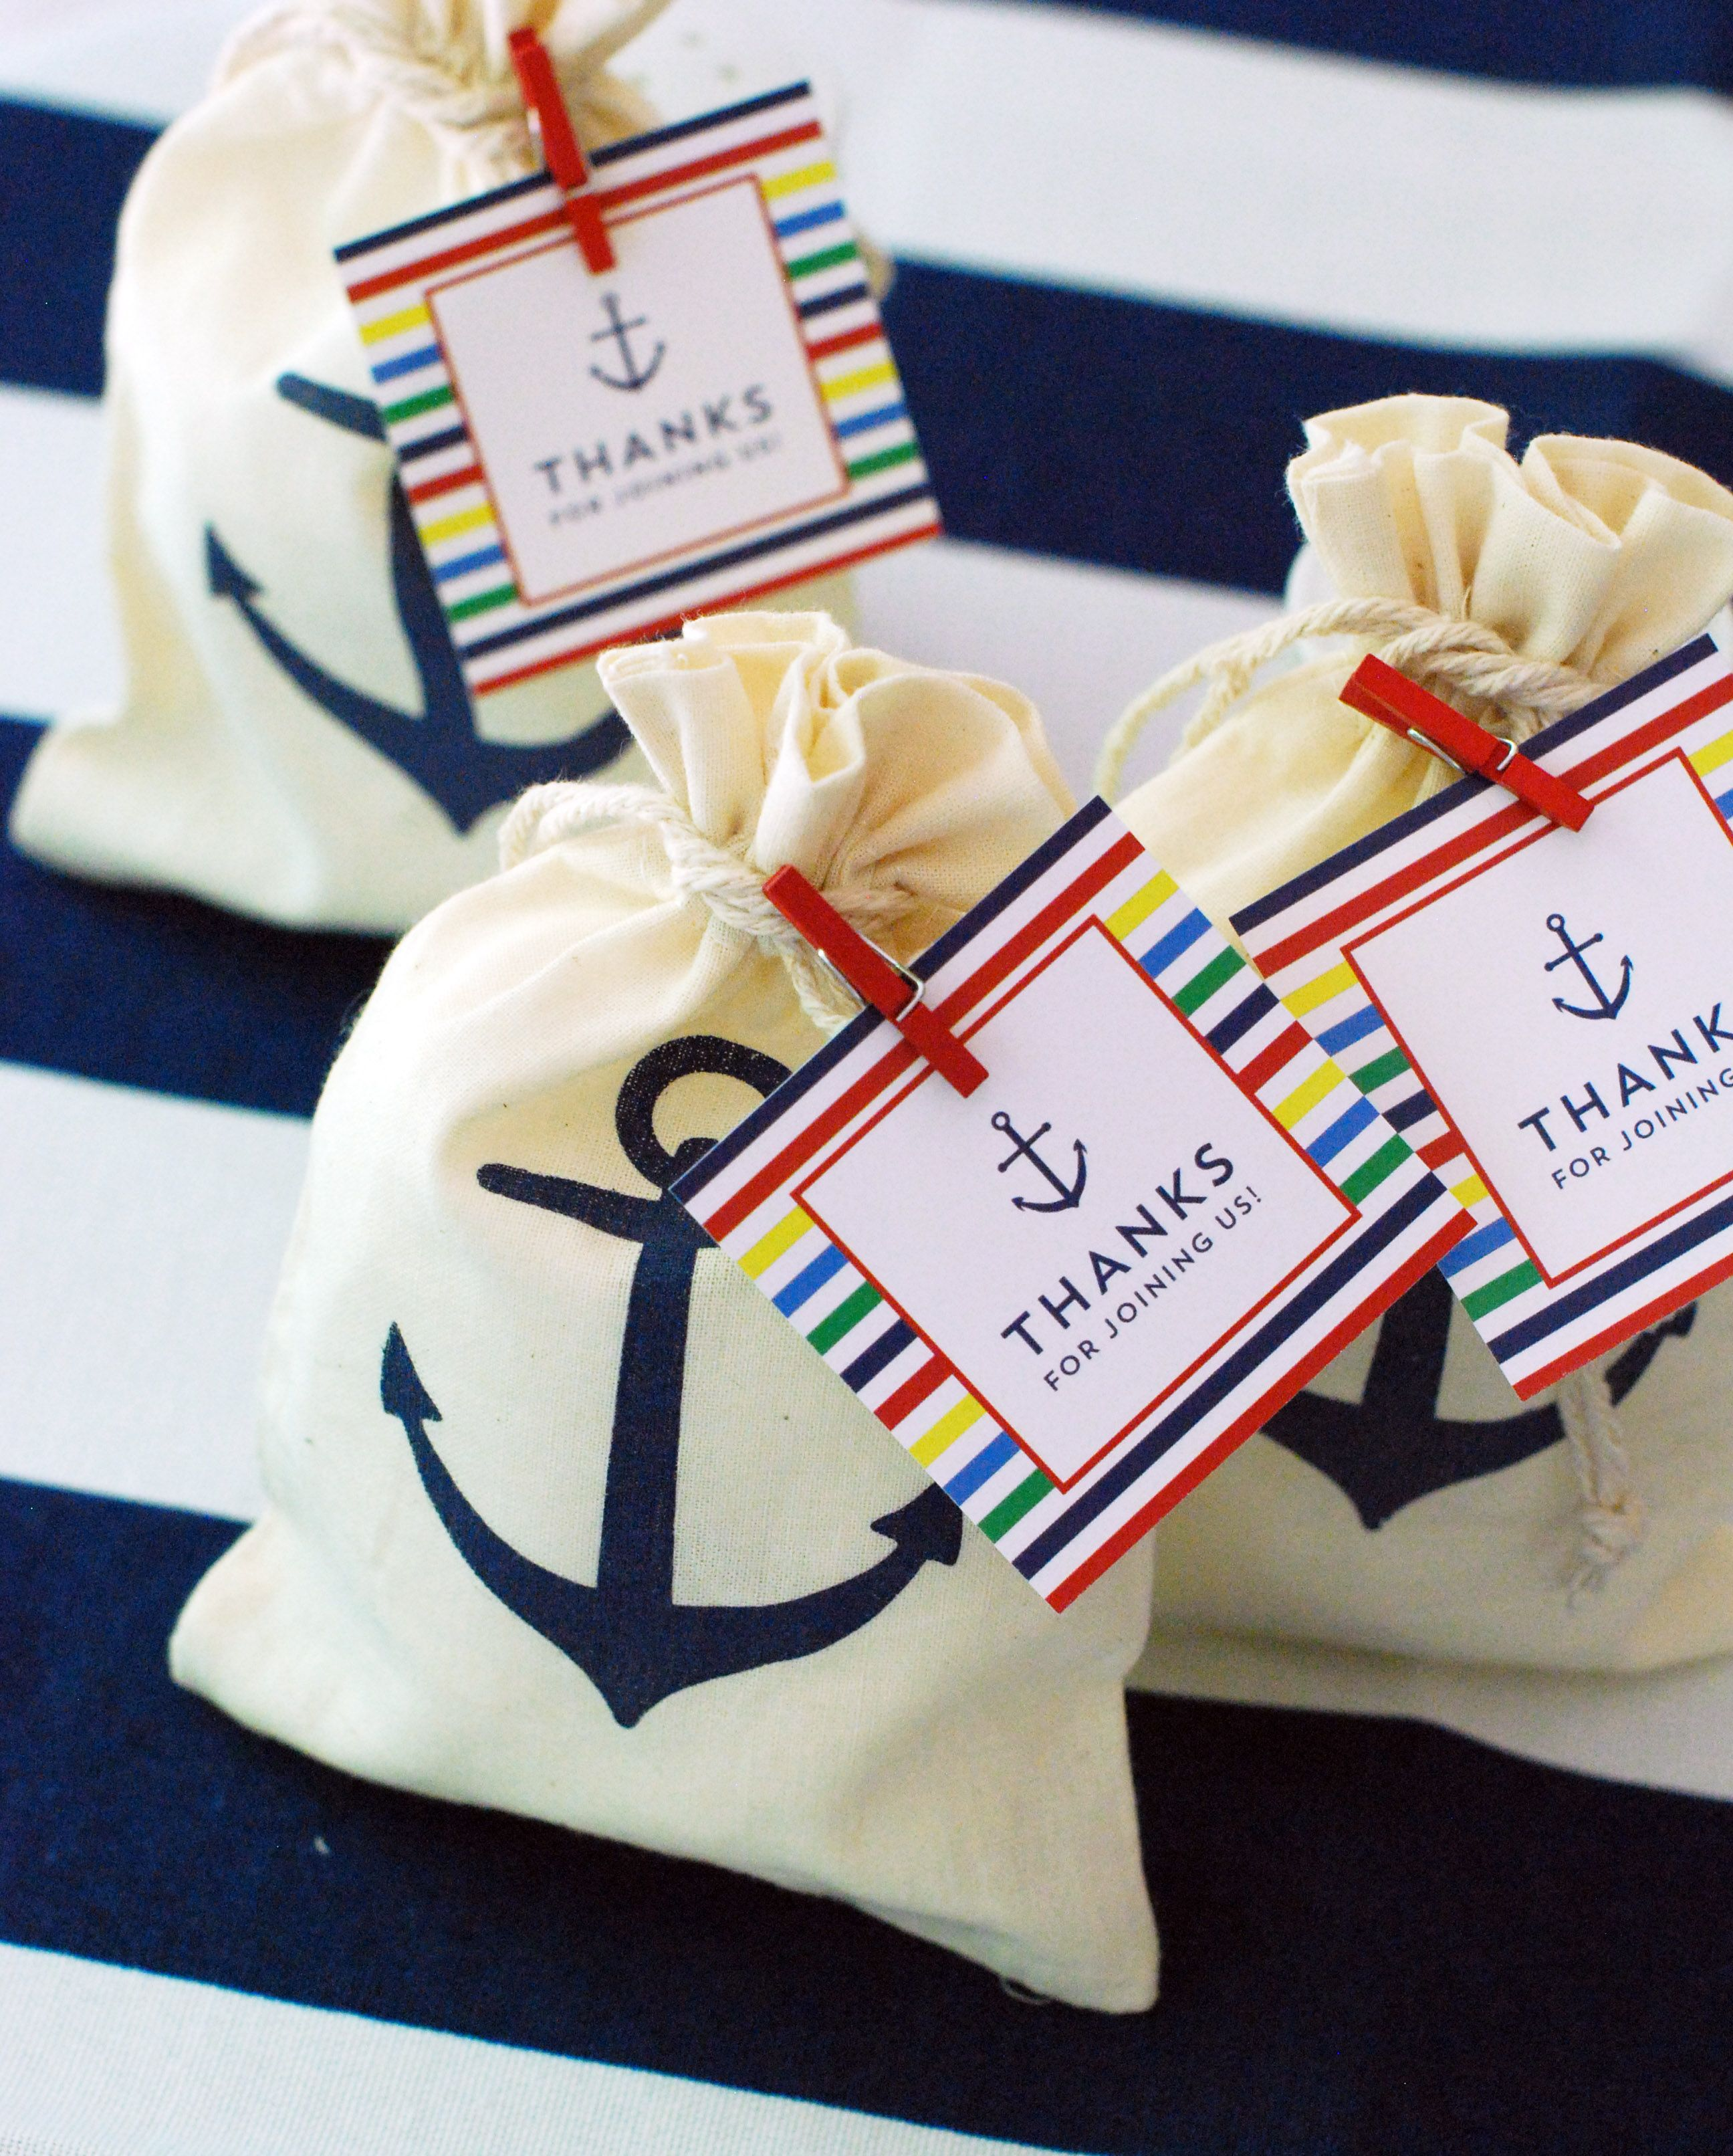 A Nautical Themed Wedding Wouldn T Be Complete Without Sweet Thank You Gift For Guests Image Via Thepartydress